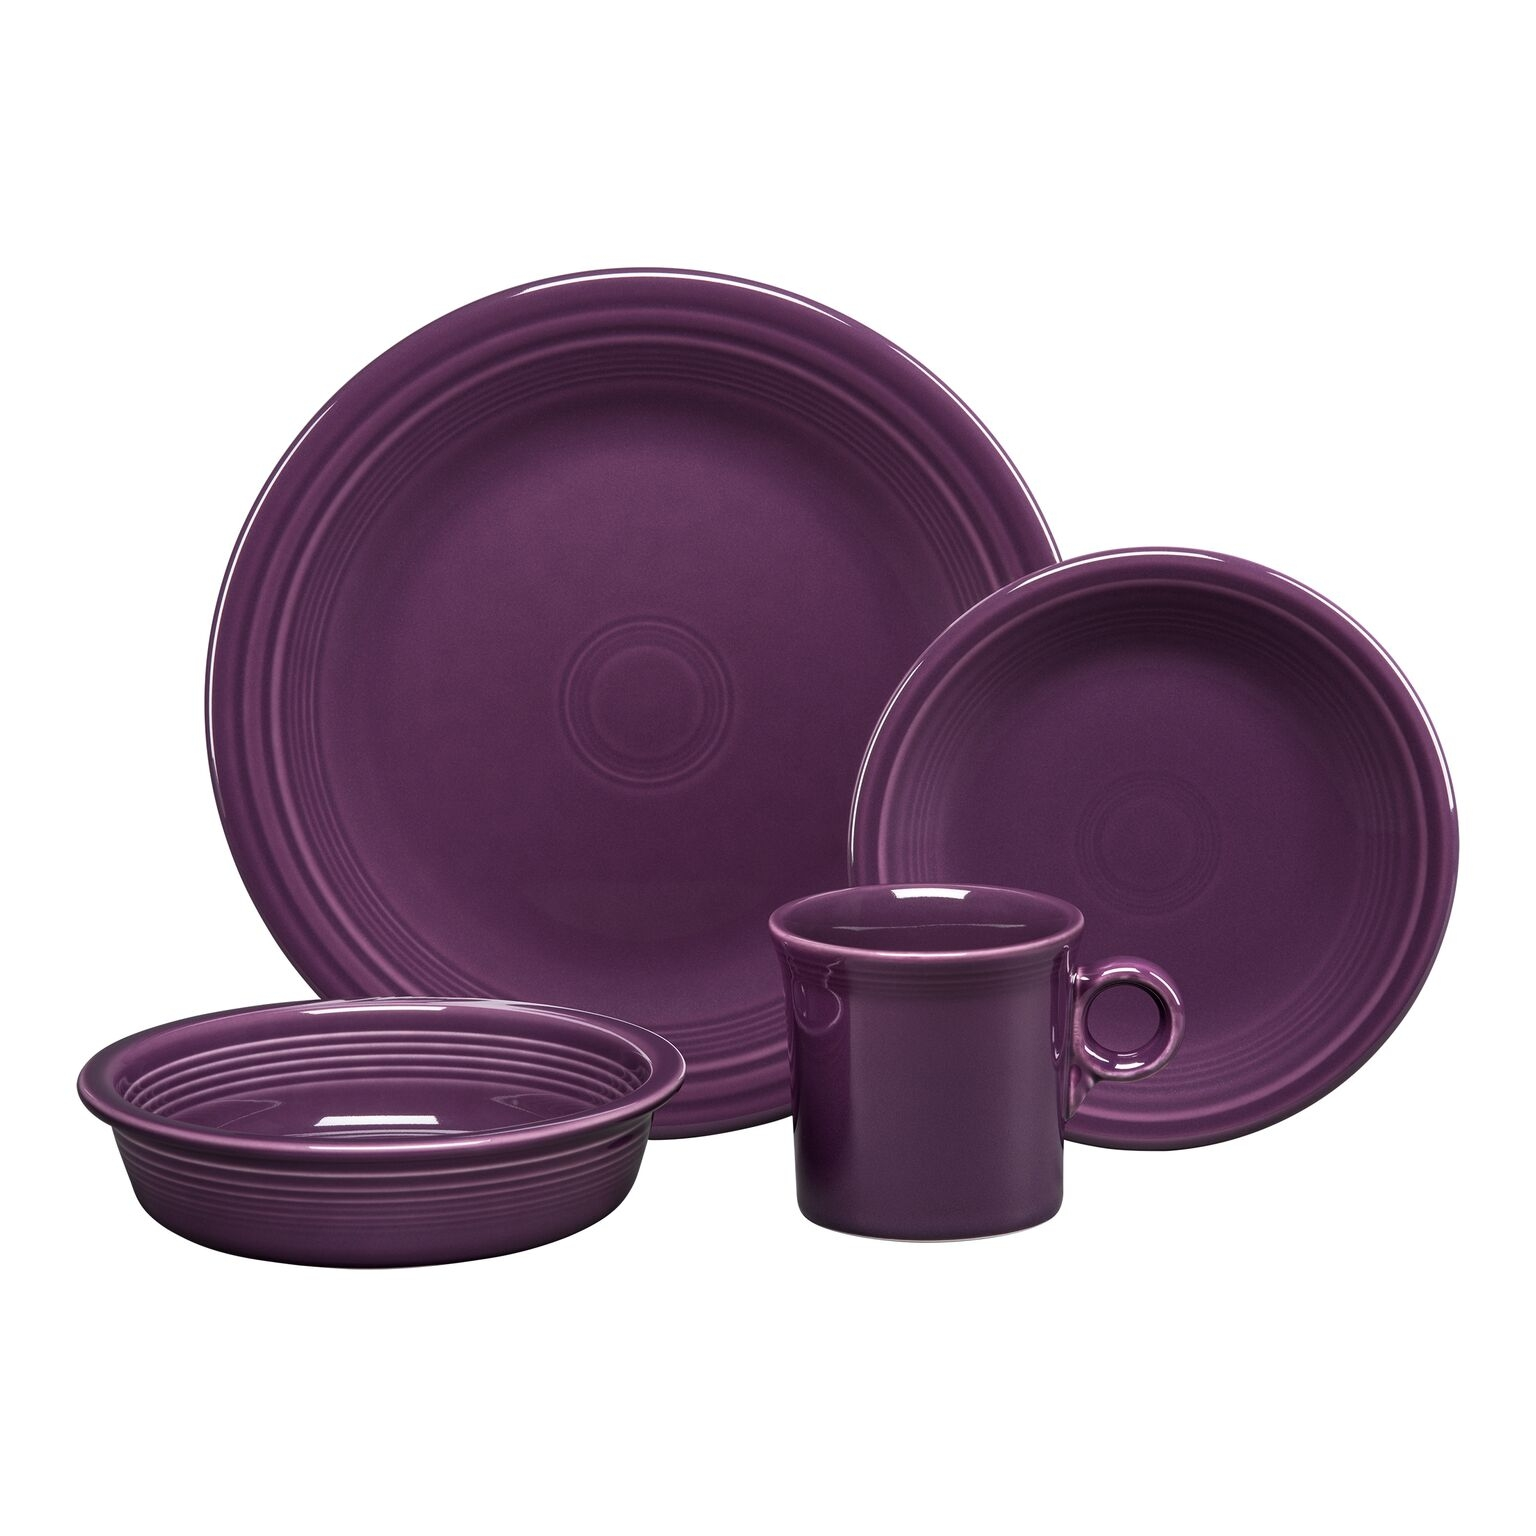 Fiesta®  4- Piece Place Setting - Mulberry Purple